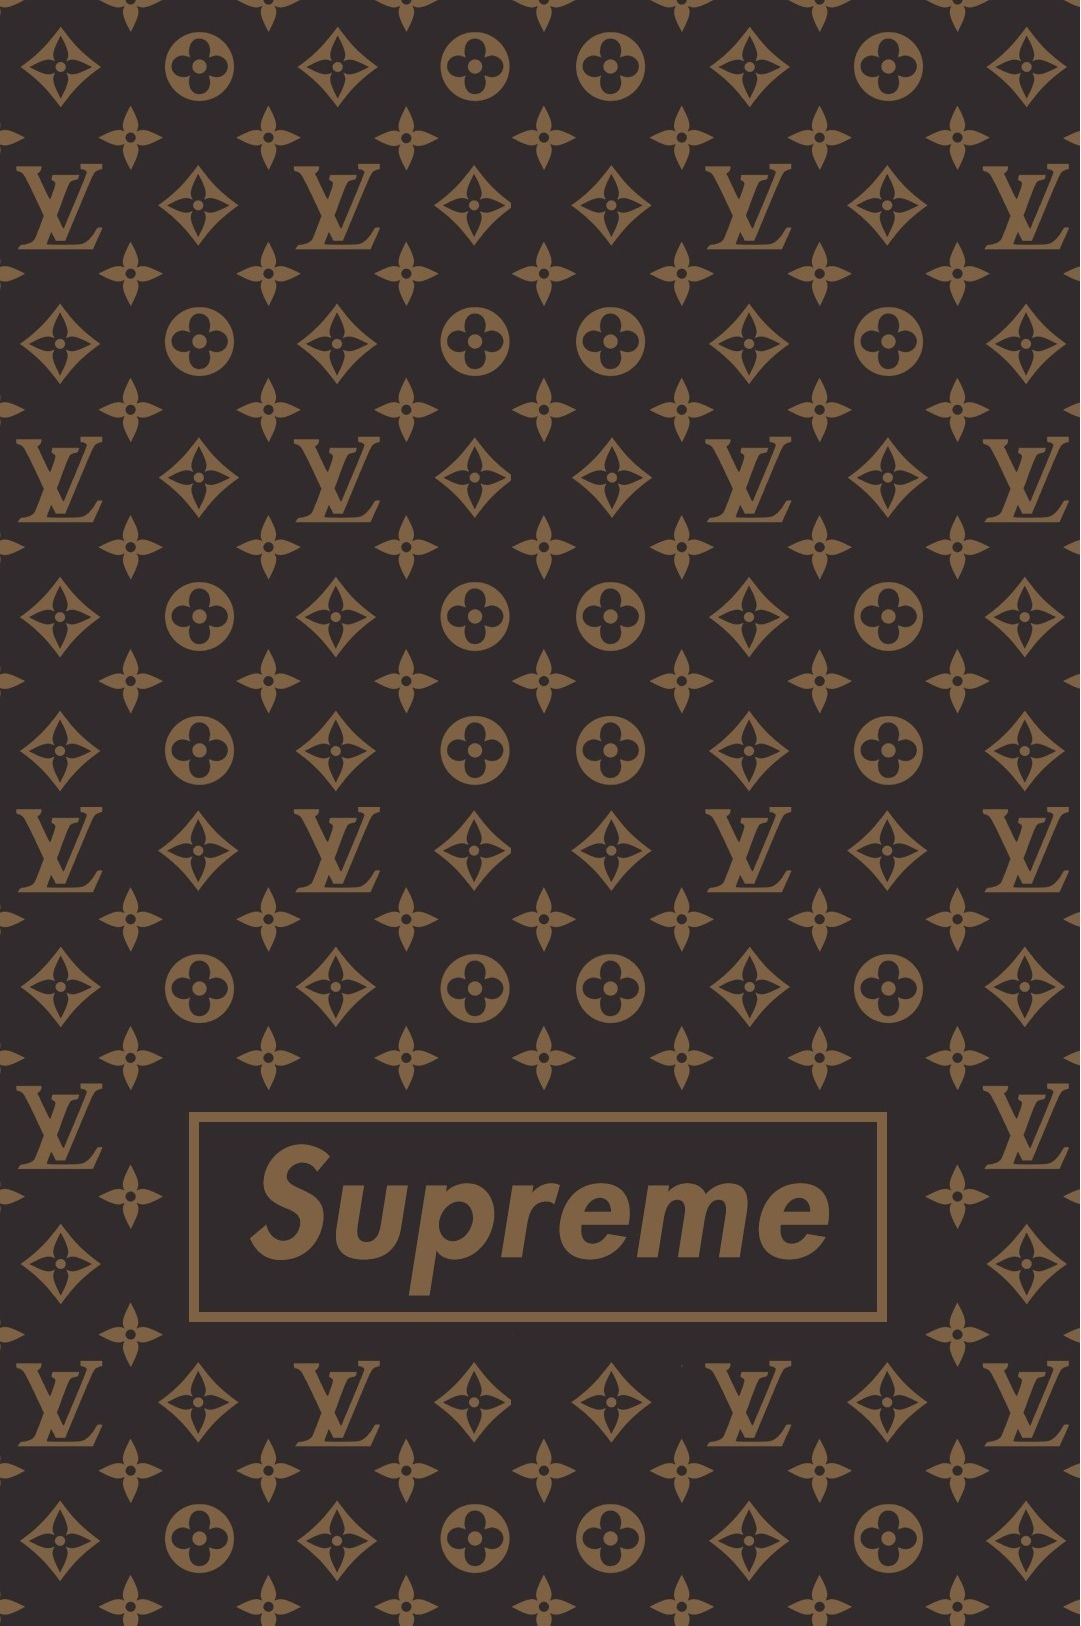 louis vuitton wallpaper 70 Luis vuitton, Vuitton, Louis